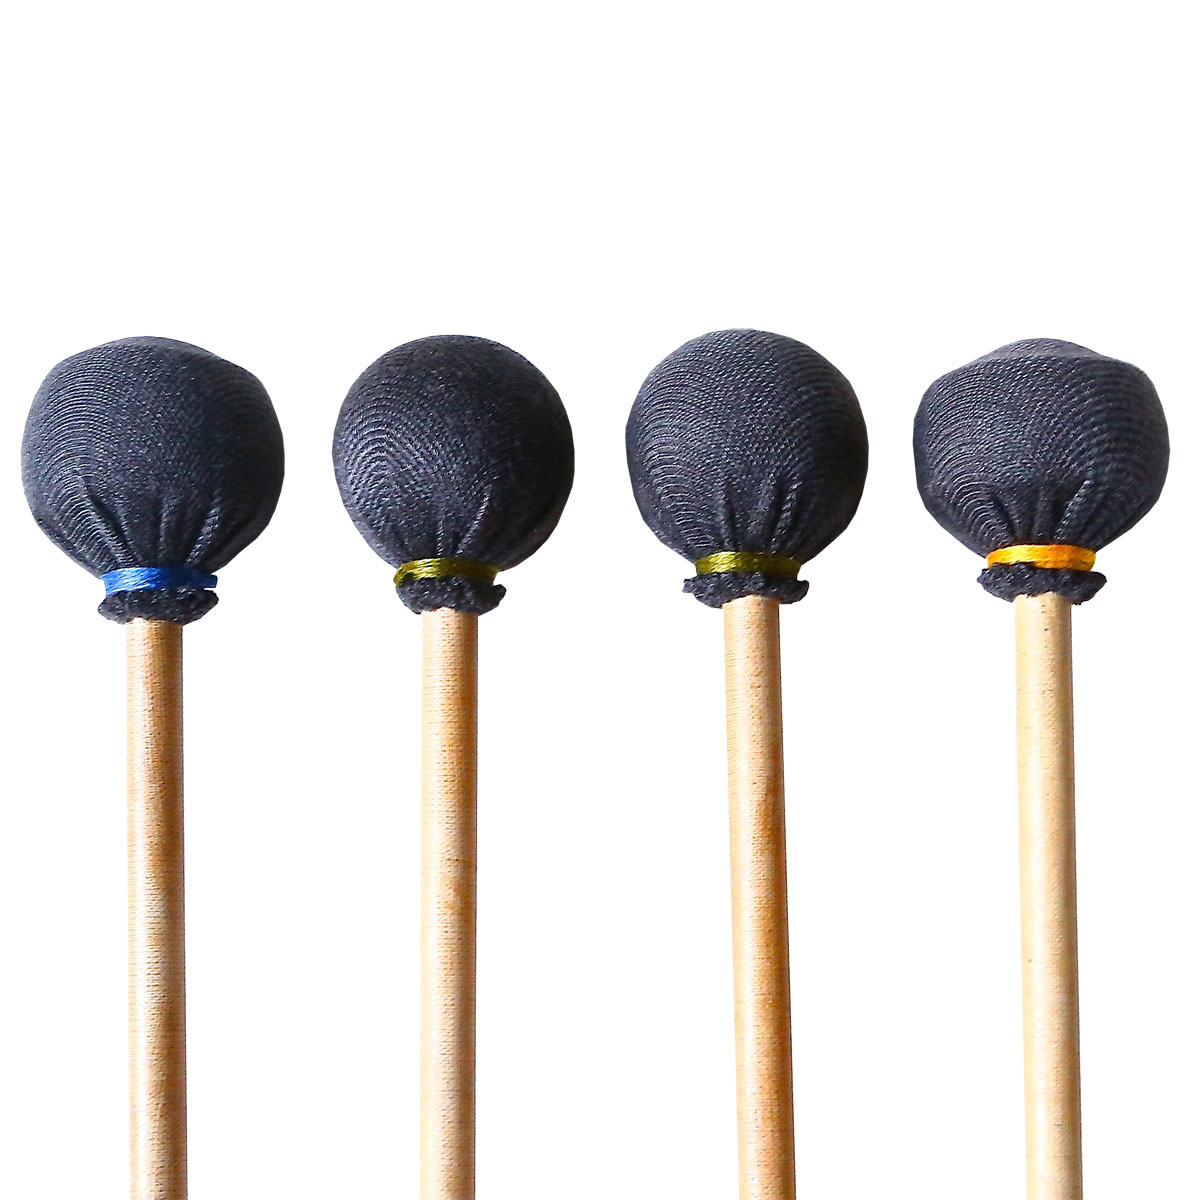 Dragonfly Percussion Custom Graduated Marimba Mallet Set with Birch Handles (Specify Which Model)